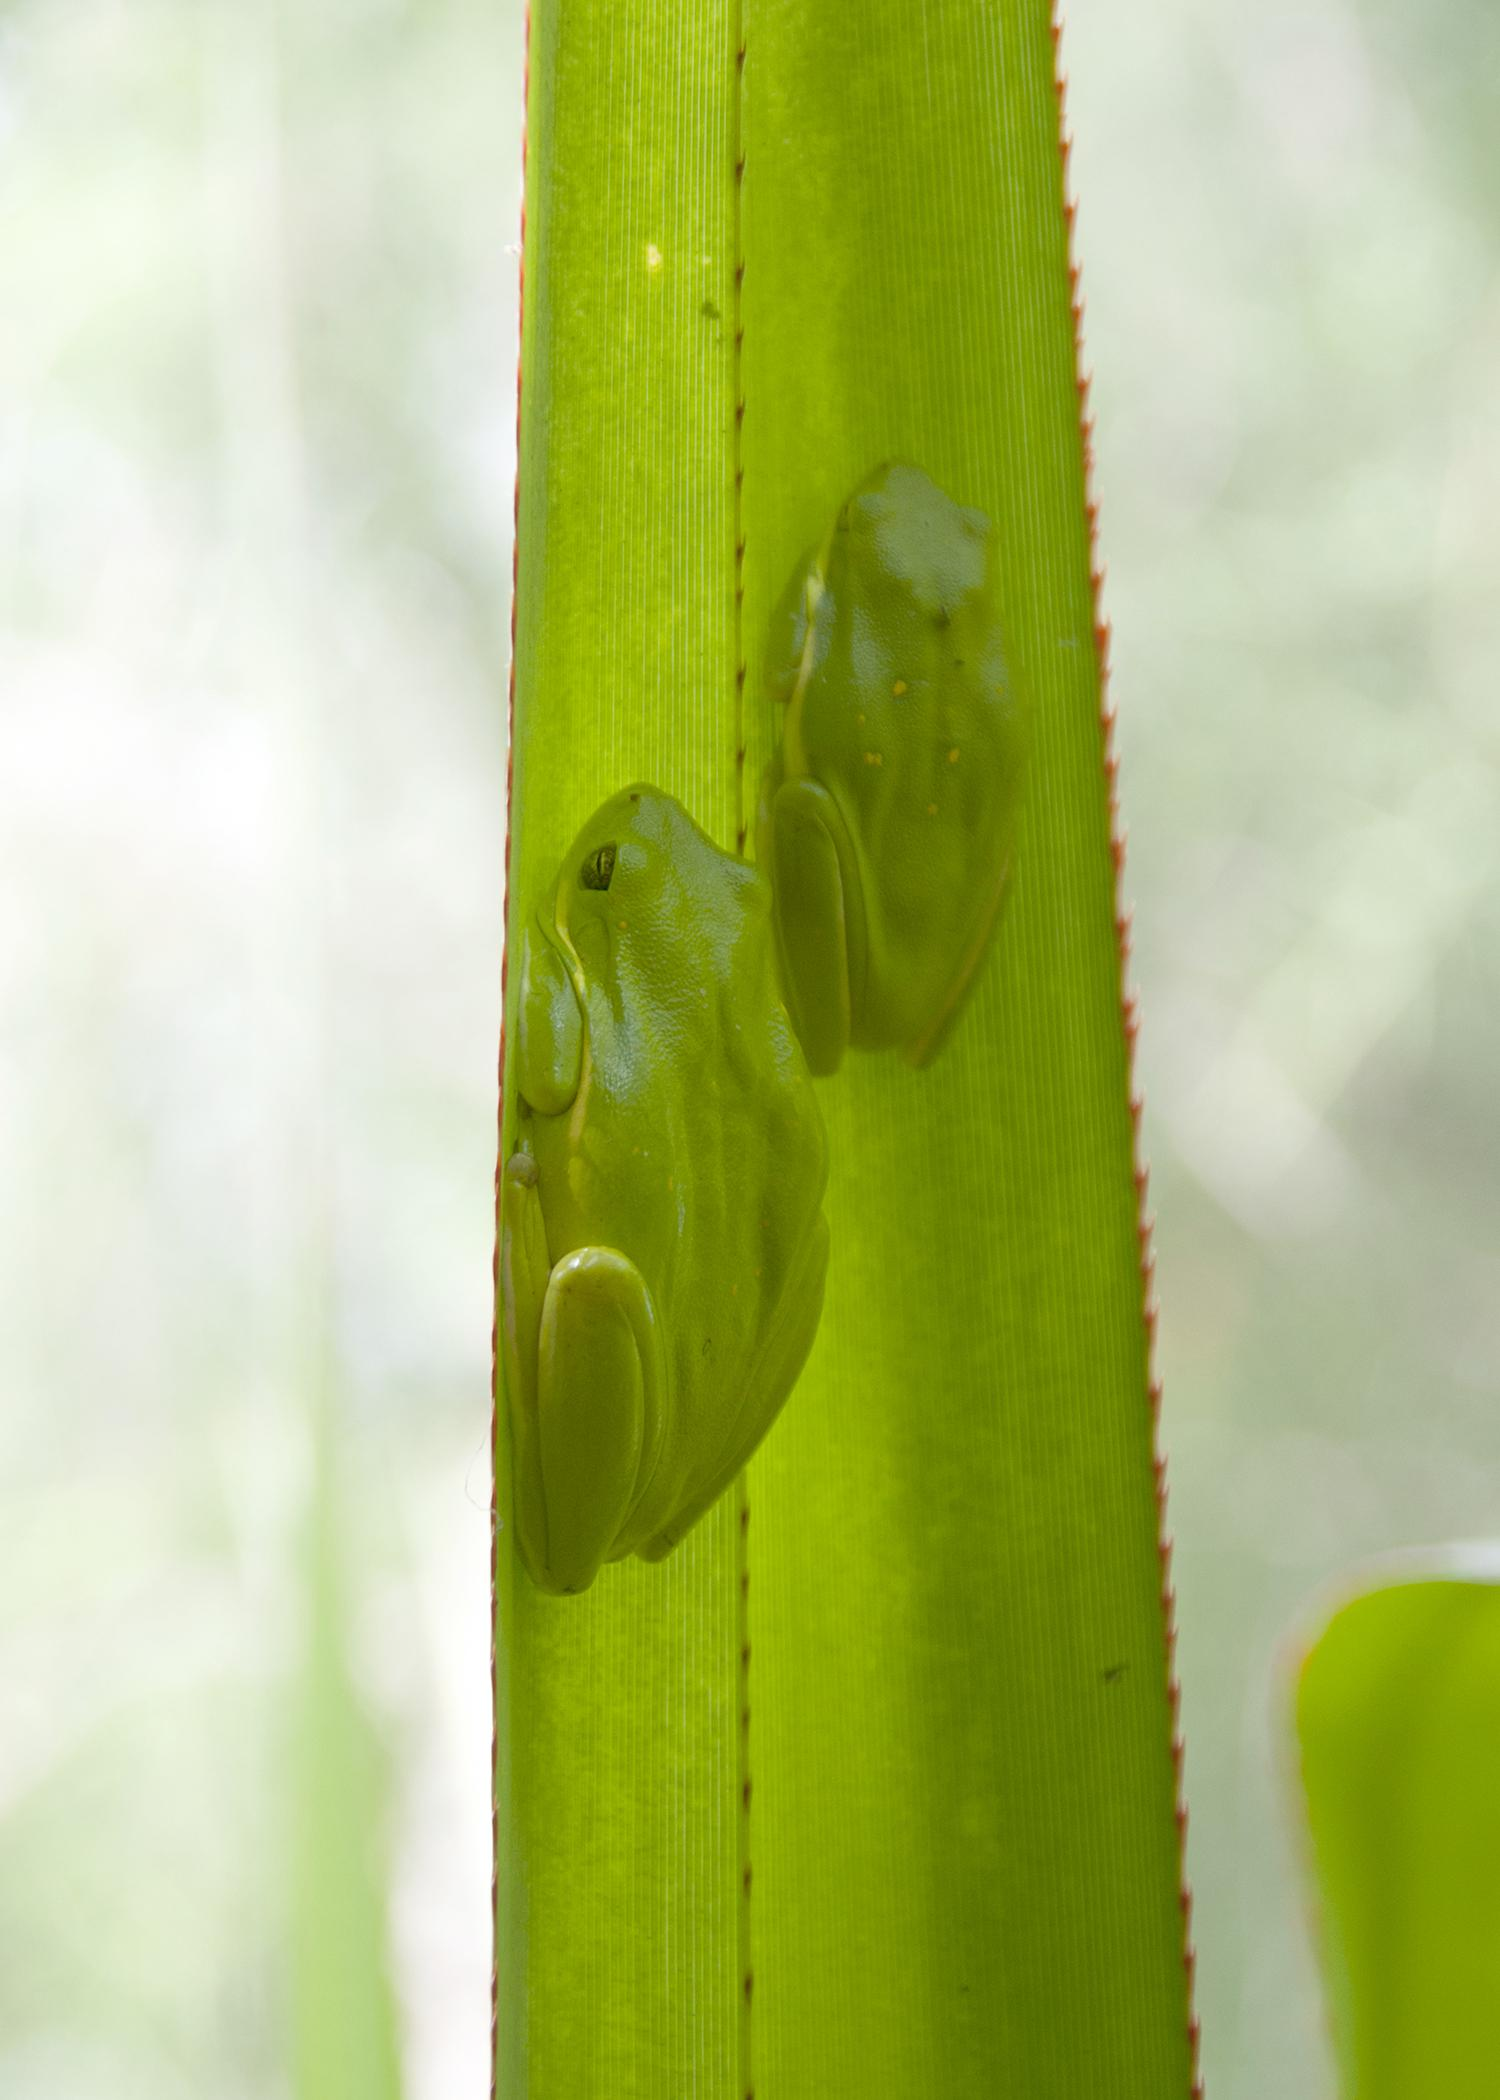 Frogs in Mississippi, such as these green tree frogs, typically can be found napping in shady, moist areas during the day to avoid drying out before an evening spent in search of mates. (File phot by MSU Ag Communications/Kat Lawrence)